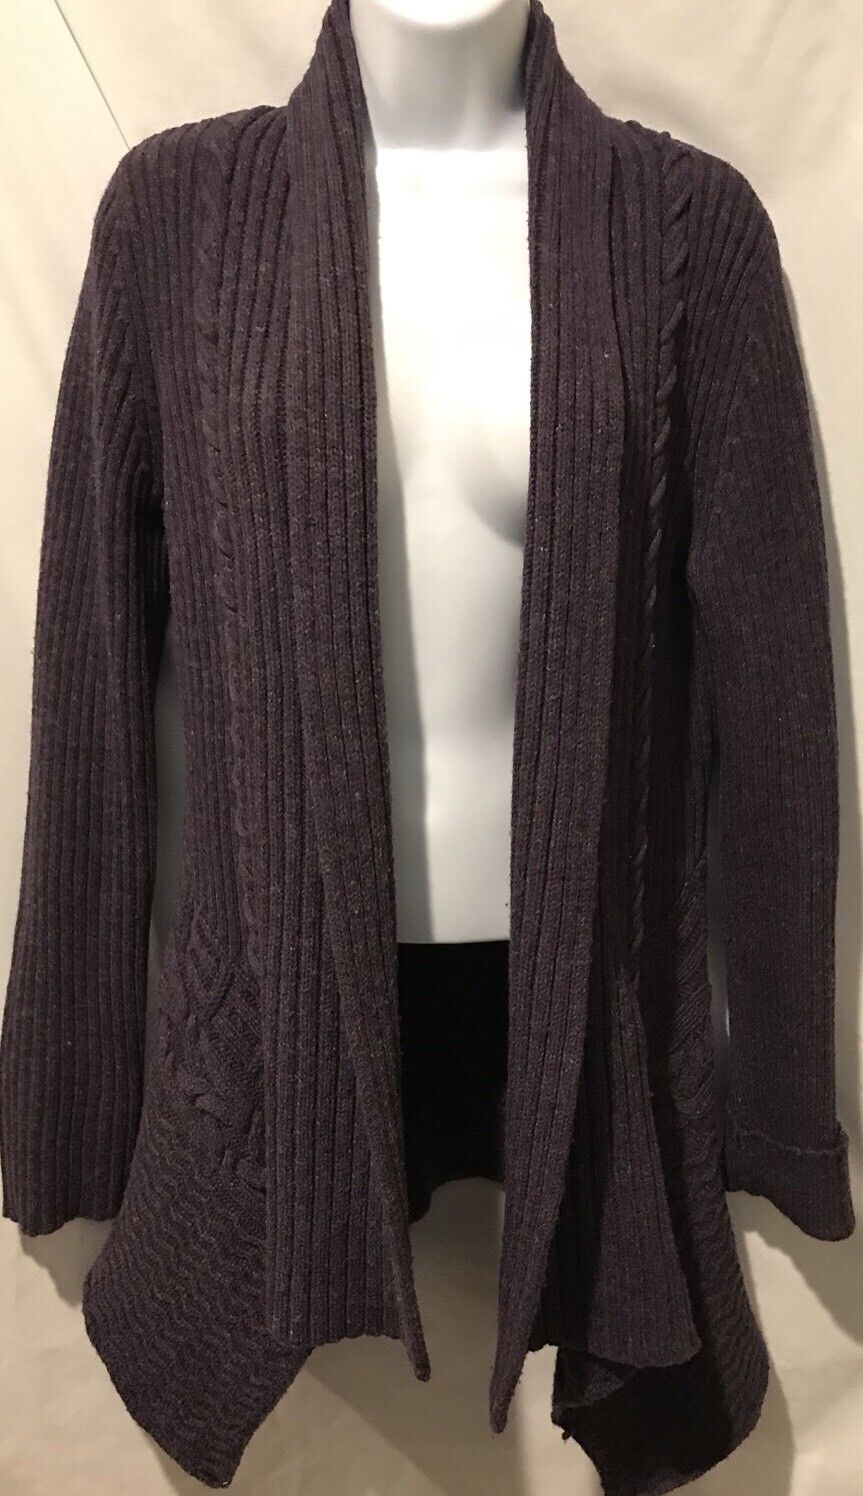 Anthropologie CANARY CANARY CANARY Cardigan Sweater Purple Women's Ribbed Wool Tunic Sz M 7c7073